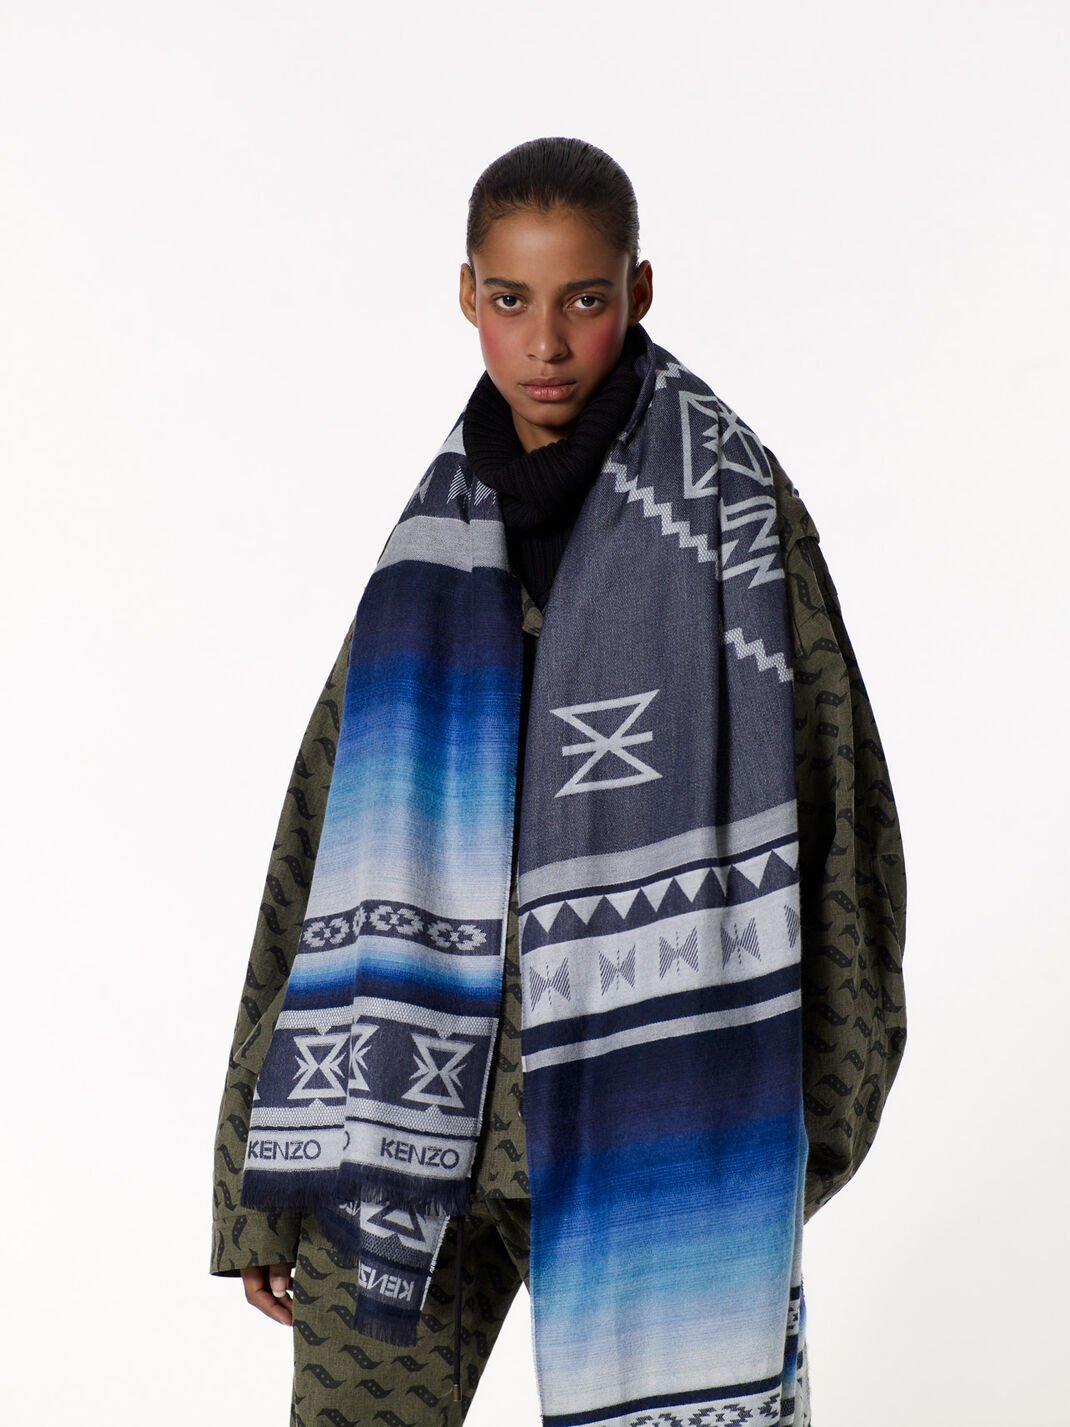 Silk and Viscose Scarf Tiger Wool, Silk and Viscose Scarf for unisex KENZO